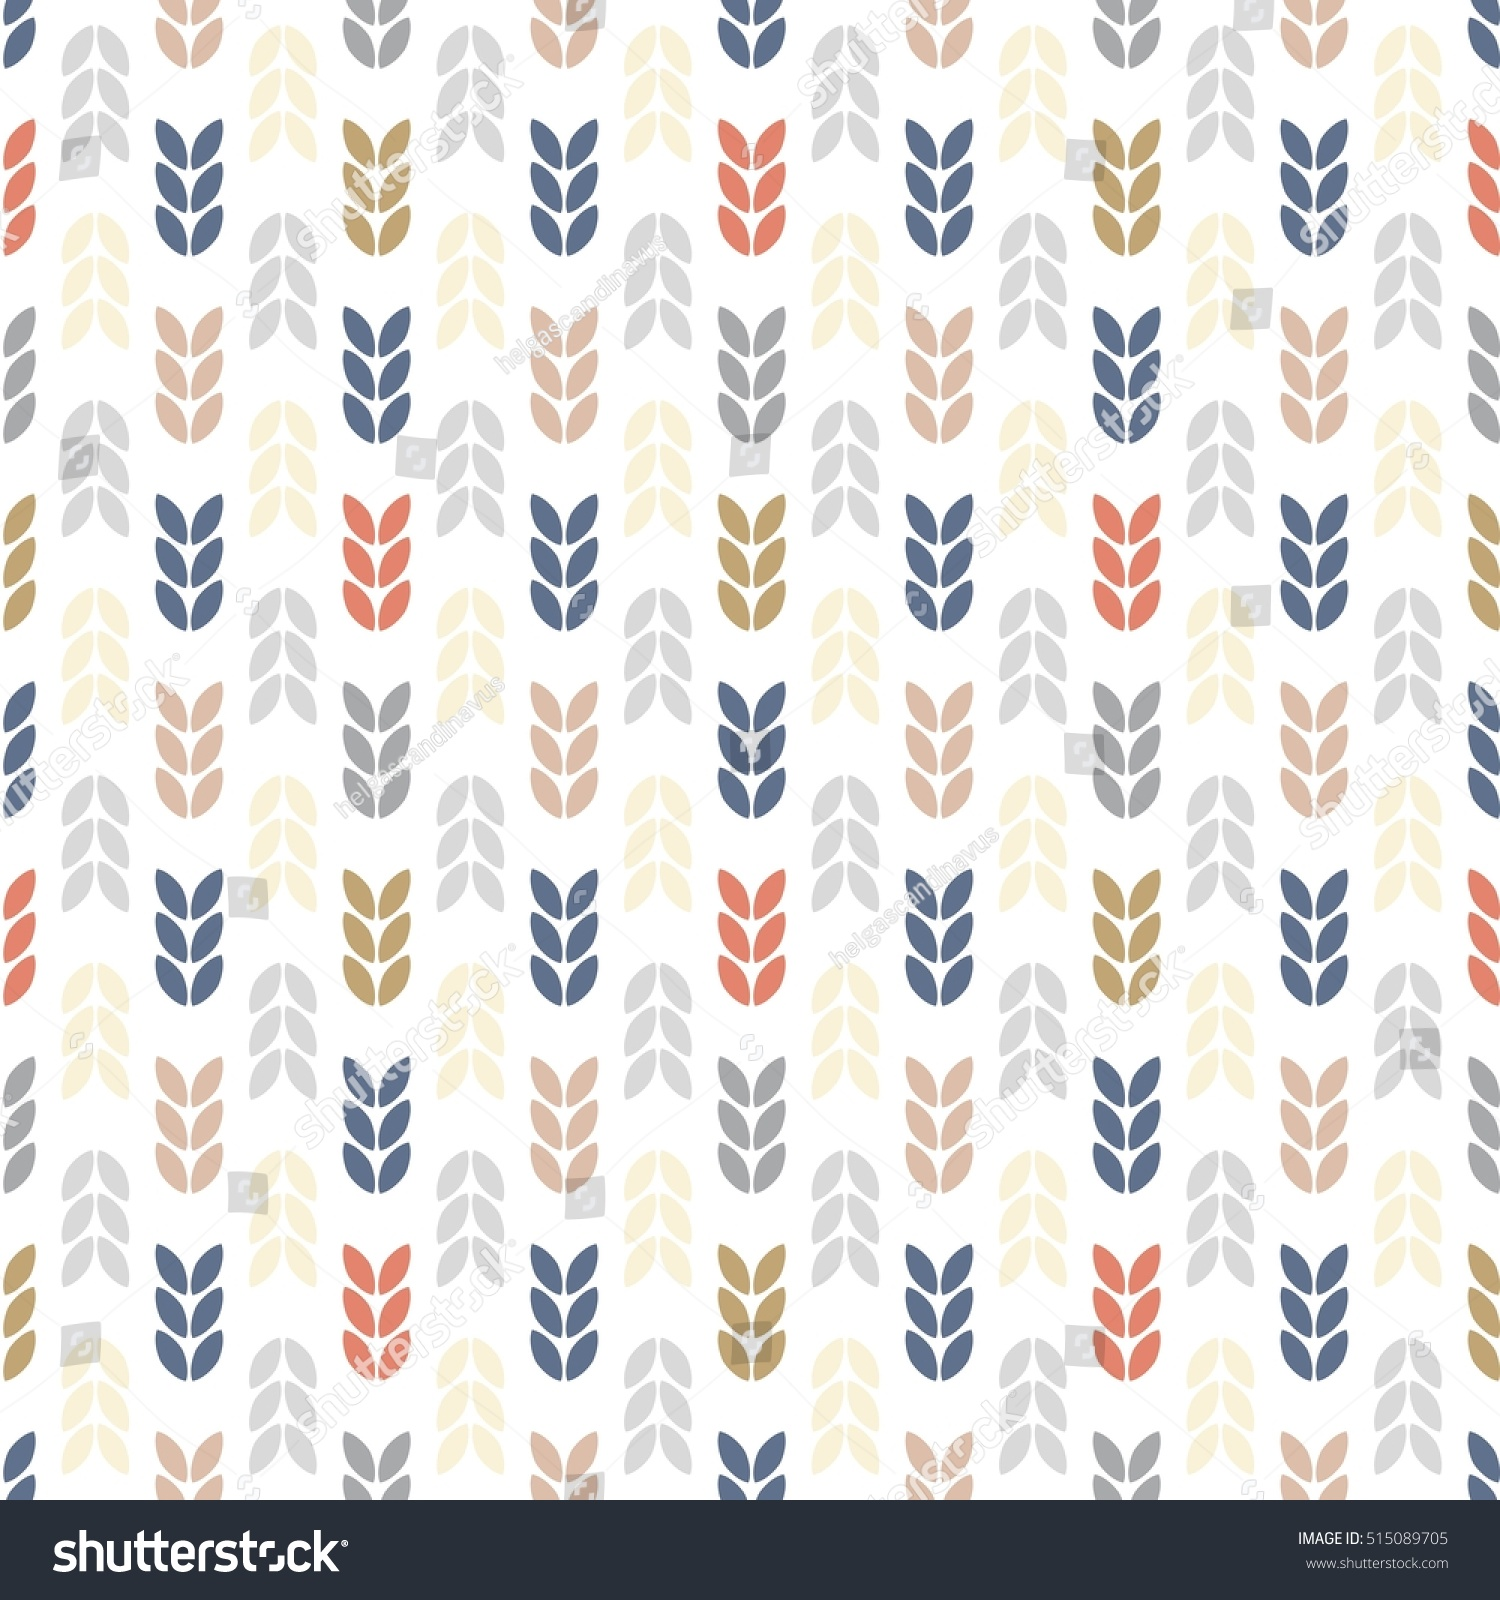 Seamless fir tree scandinavian pattern textile background wrapping - Scandinavian Nature Abstract Leaves Retro Background Stock Vector